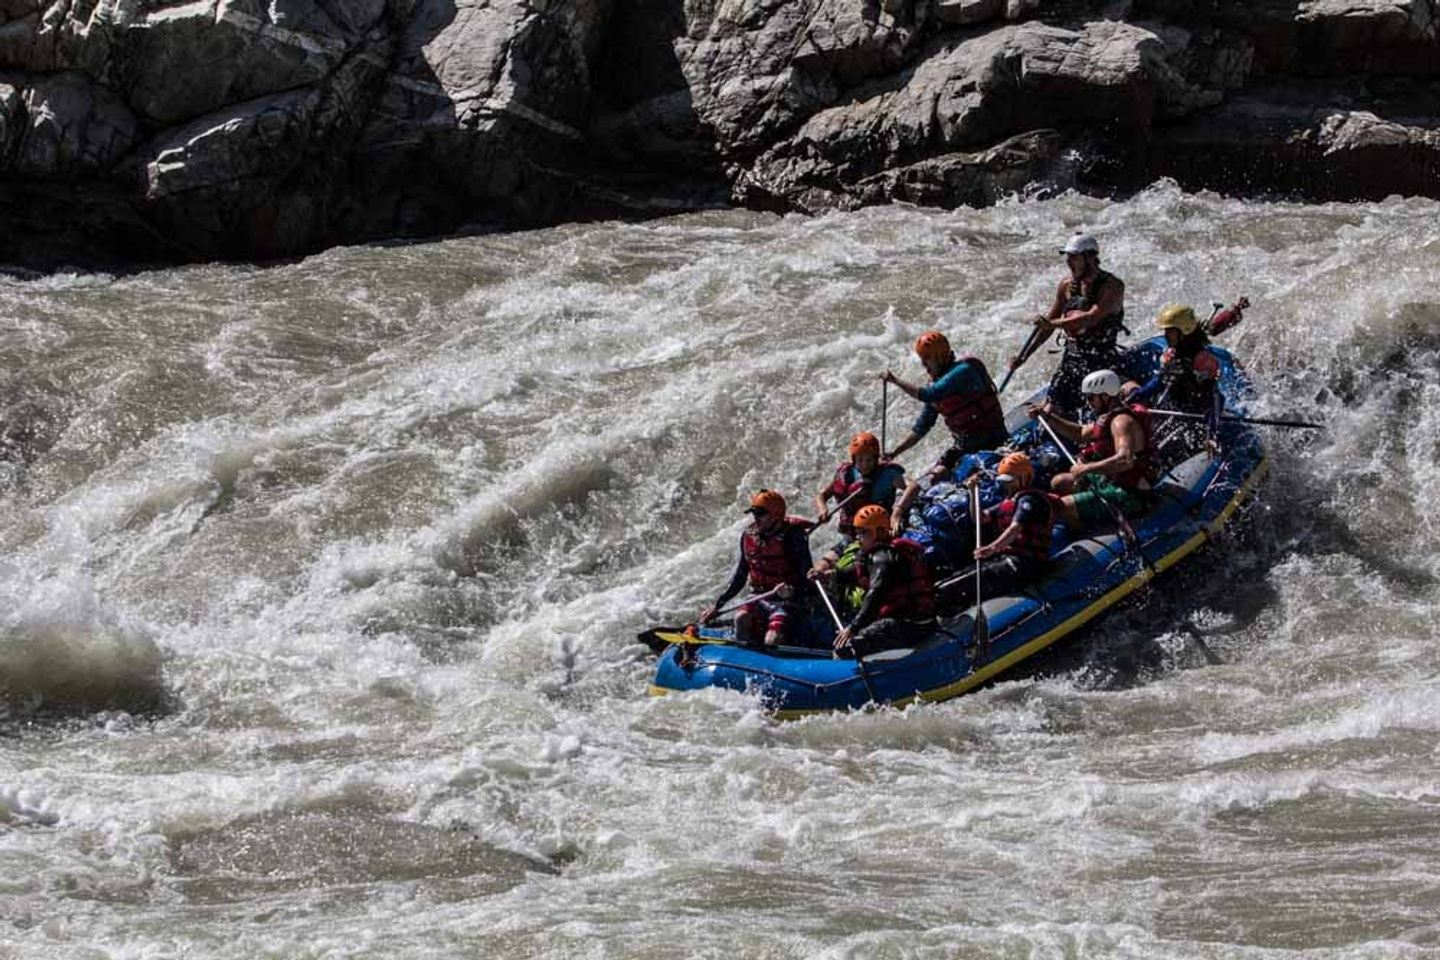 Yoga Rafting Expedition in the Himalayas